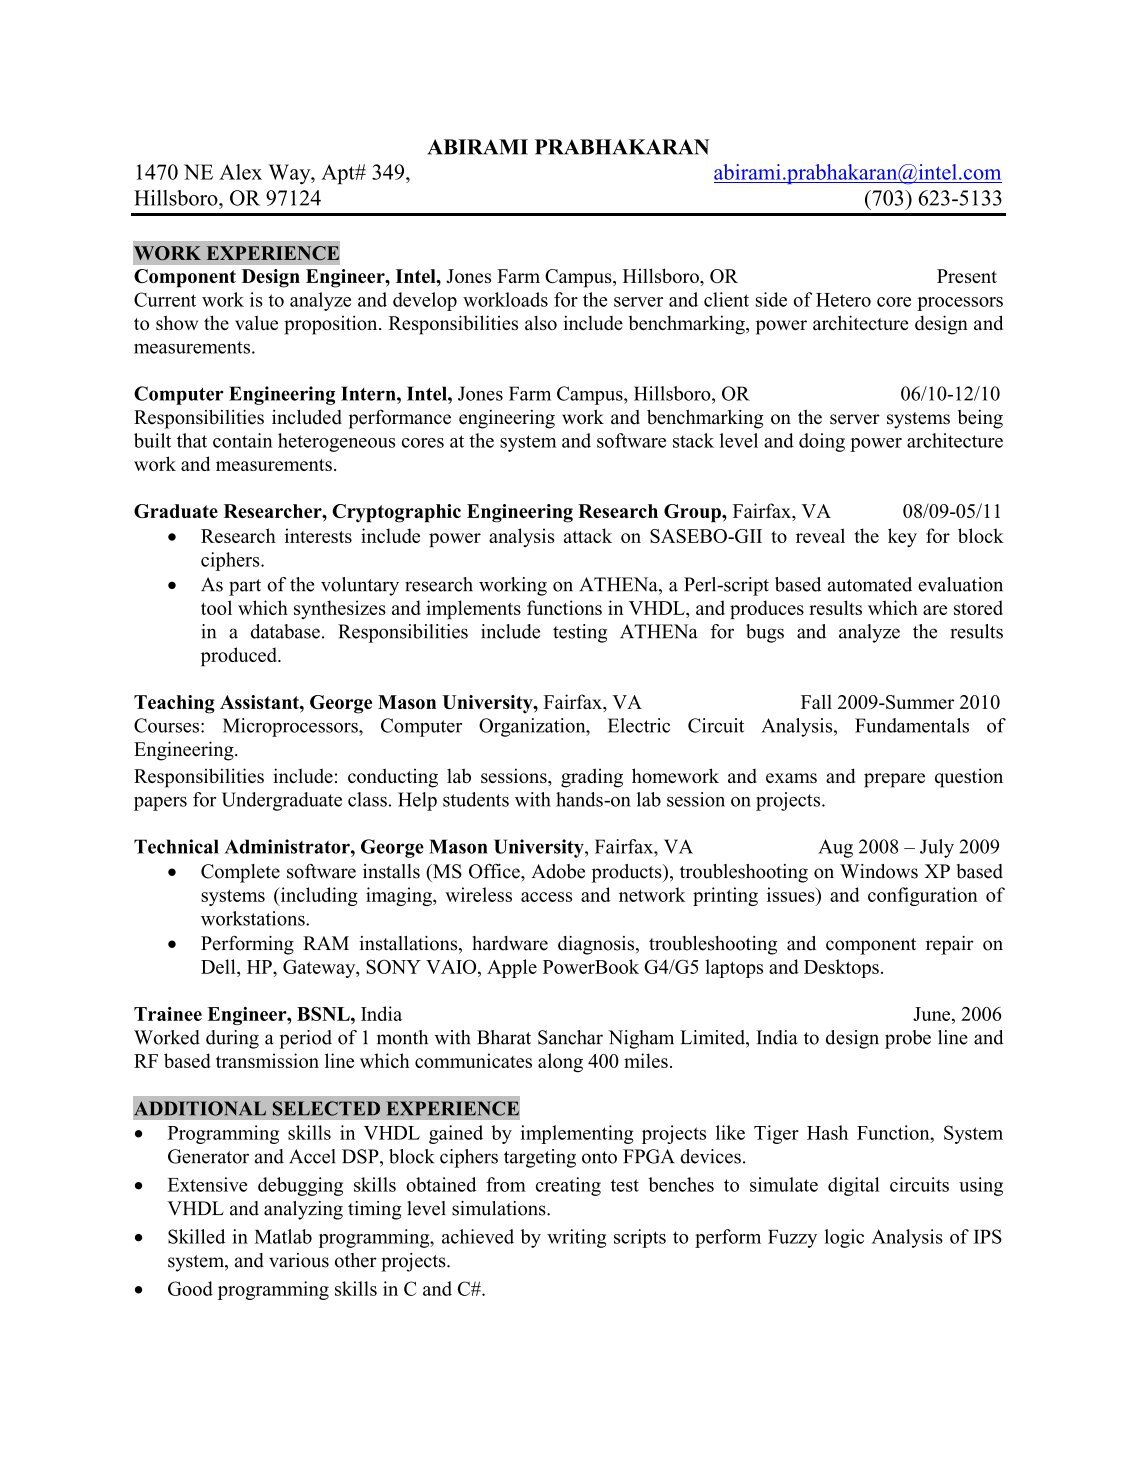 Product Engineer Cover Letter   Product Quality Engineer Sample ...